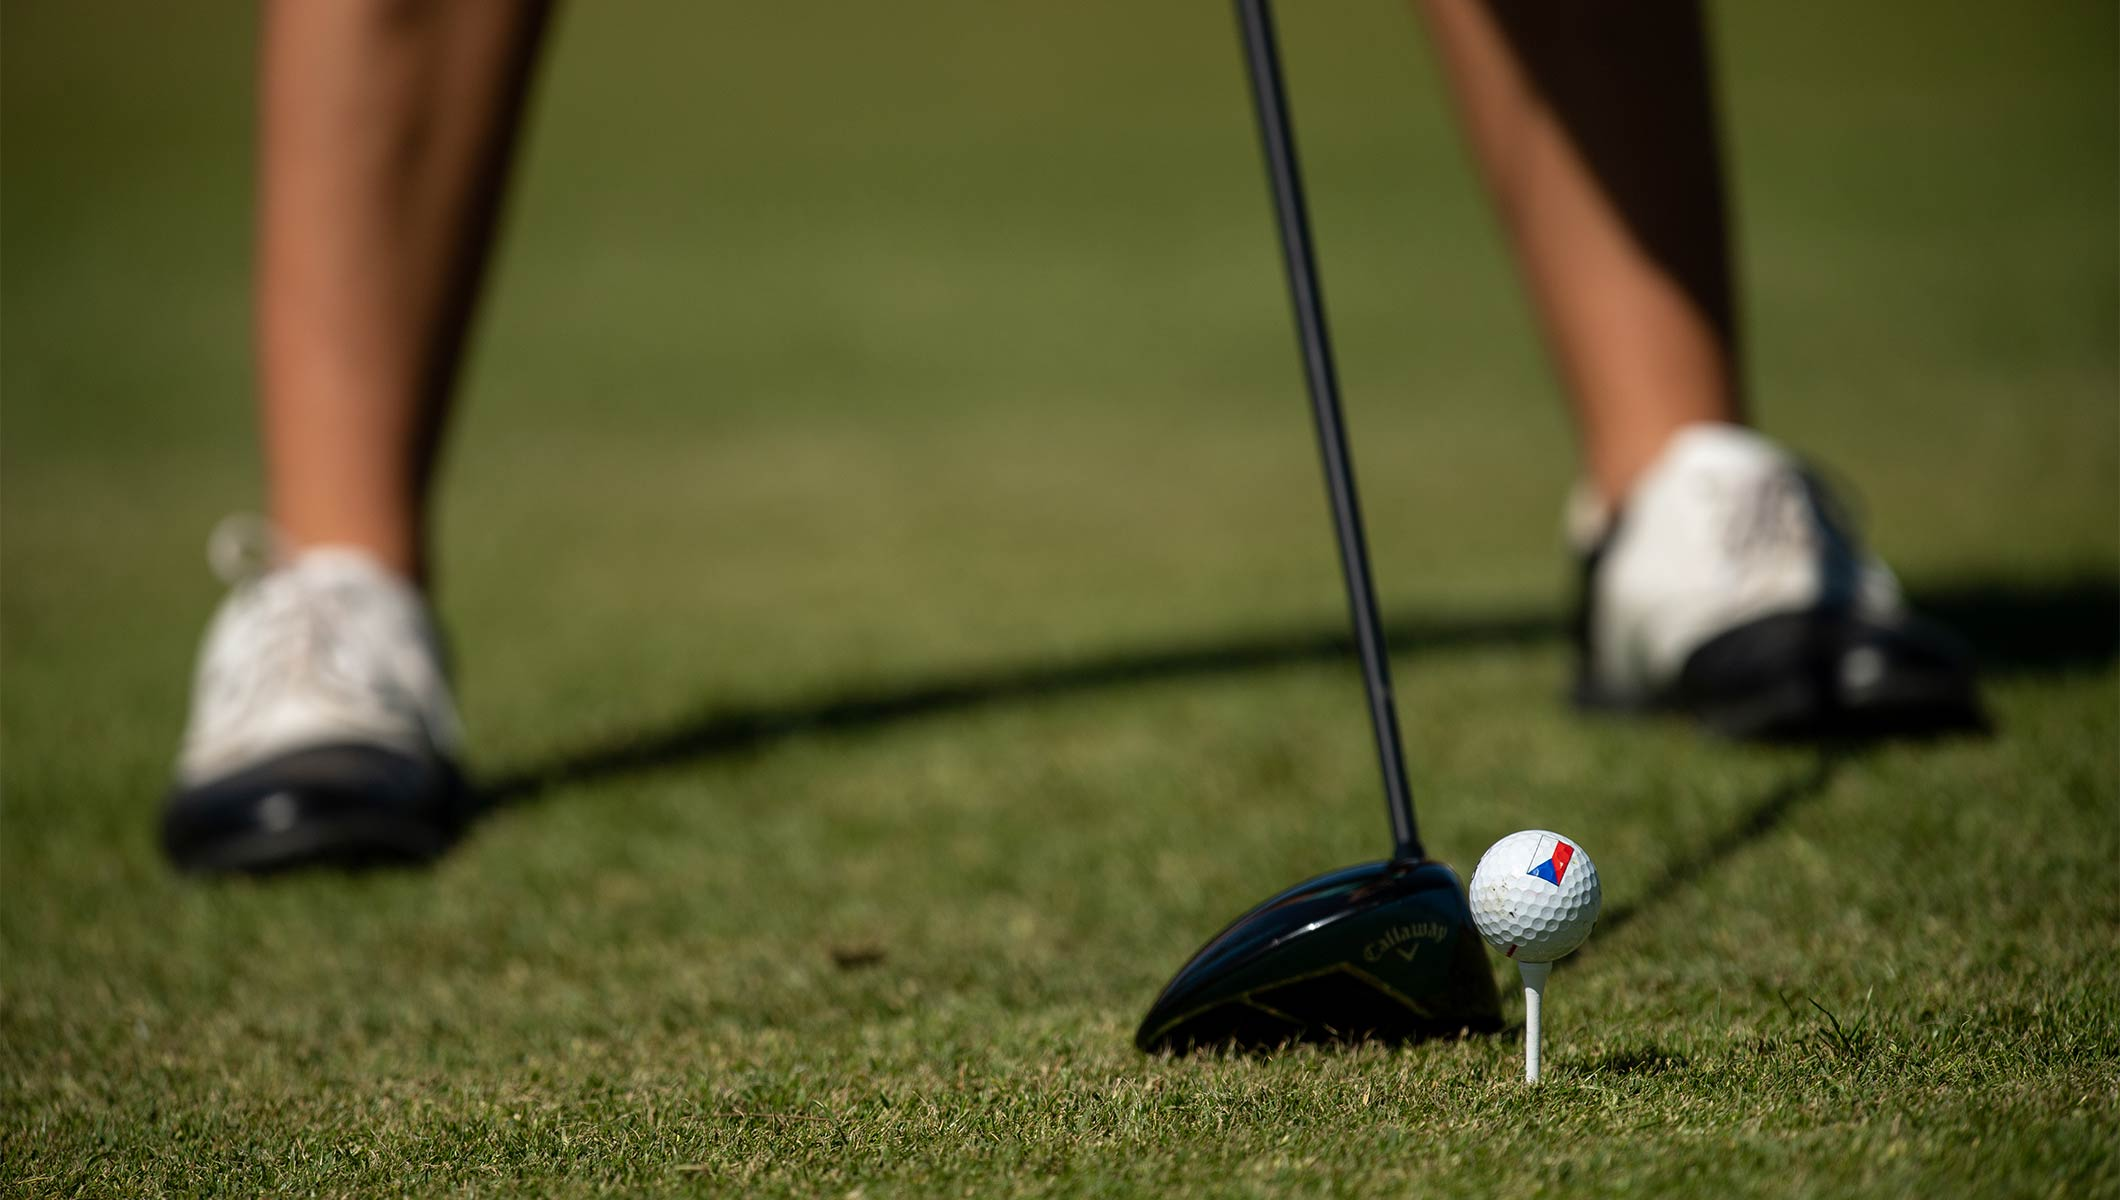 Olympic Golf - News, Featured Stories, Photos